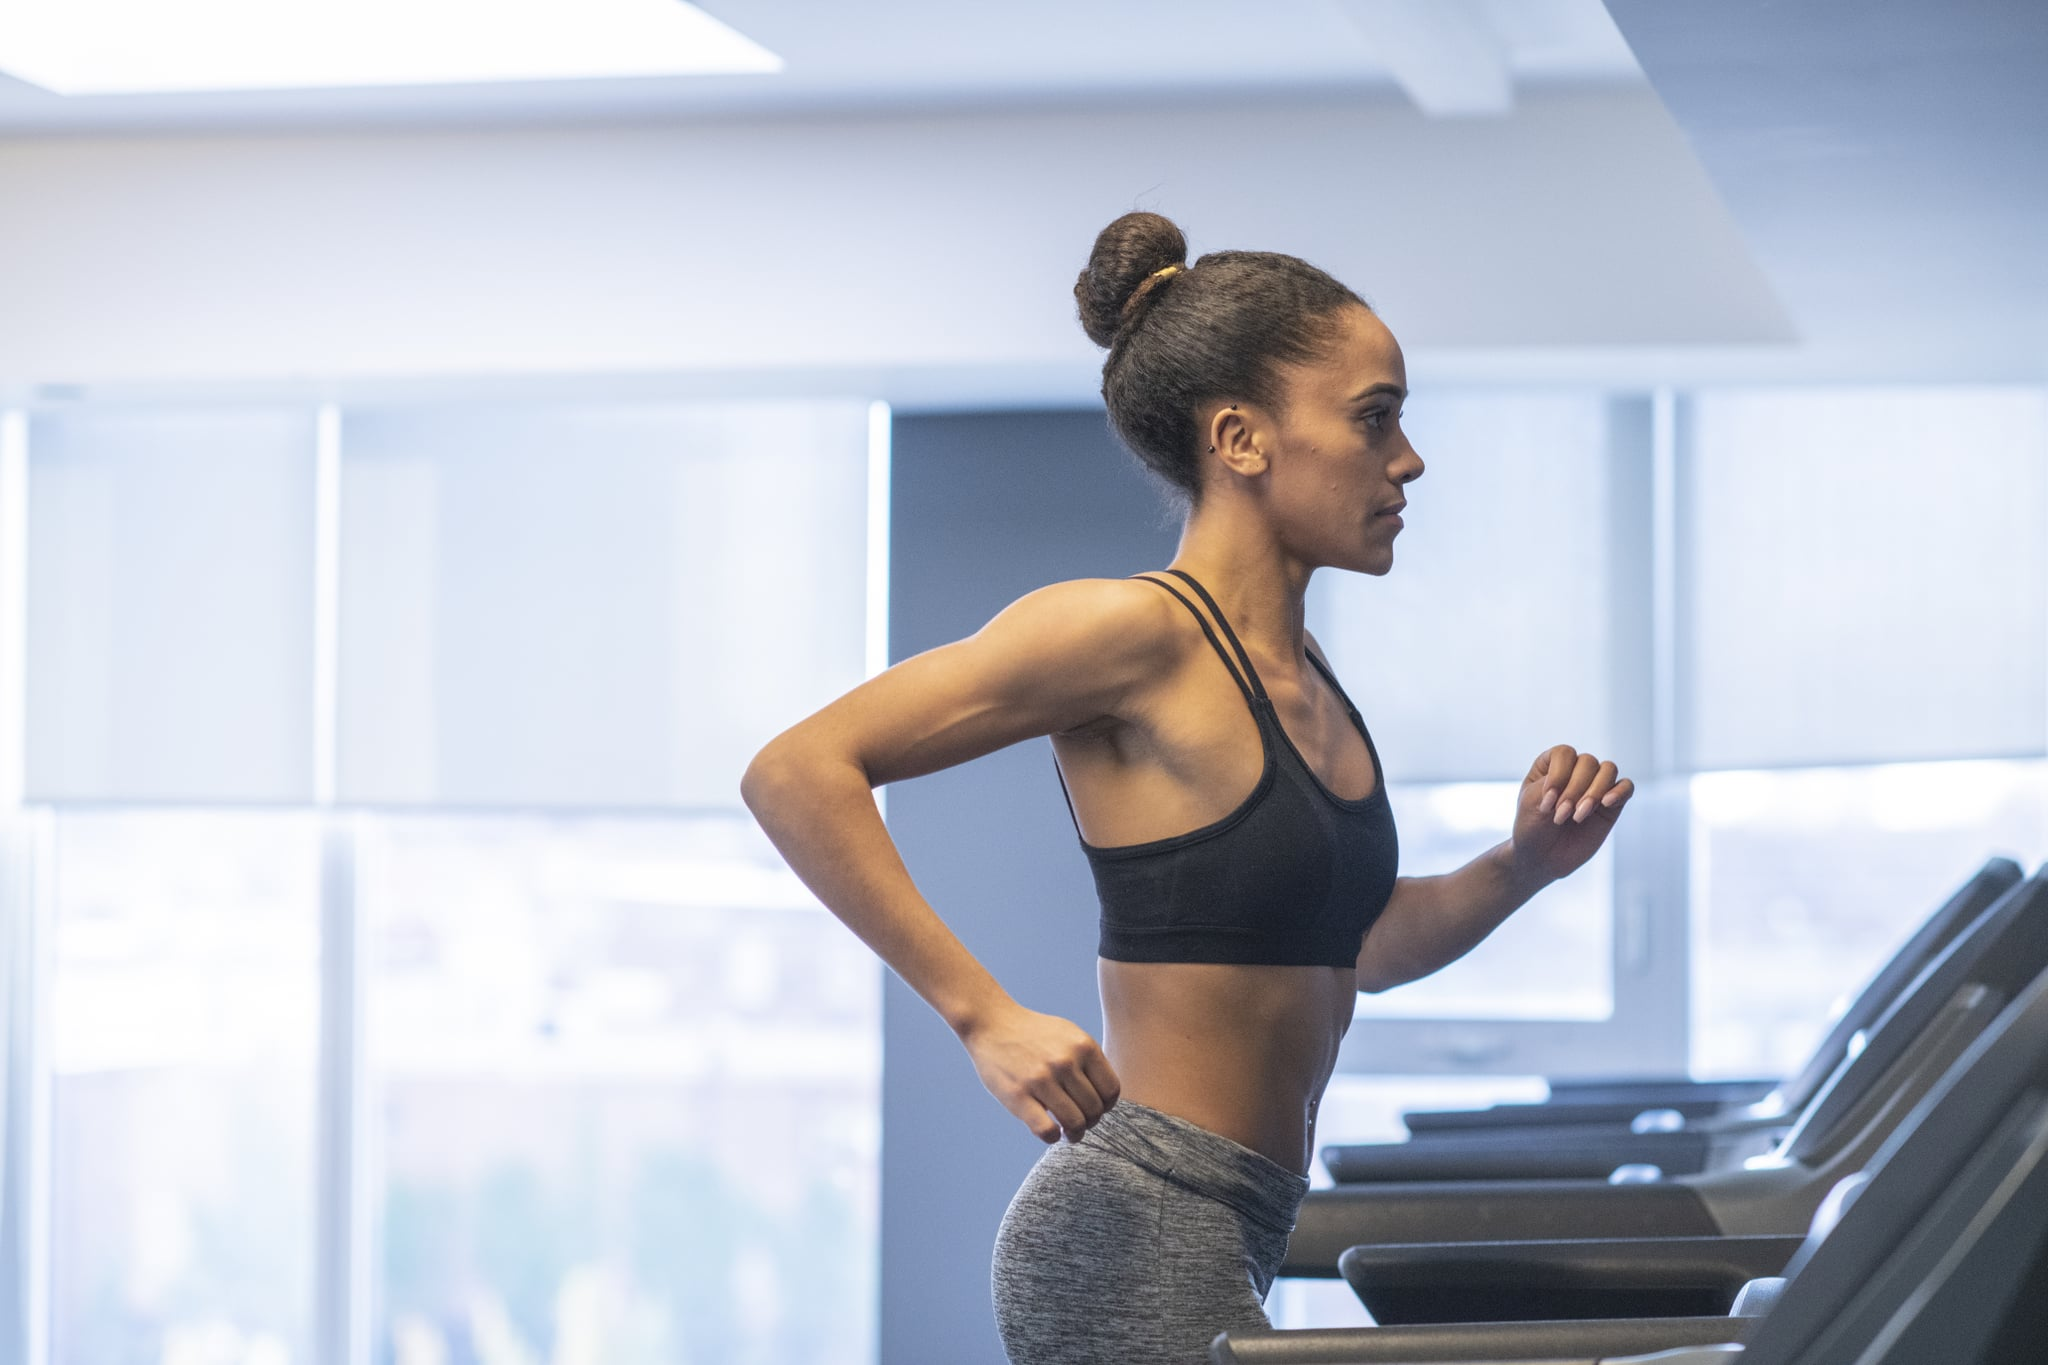 2 Trainers Agree: This Is the Best Kind of Treadmill Workout You Can Do to Build Your Booty